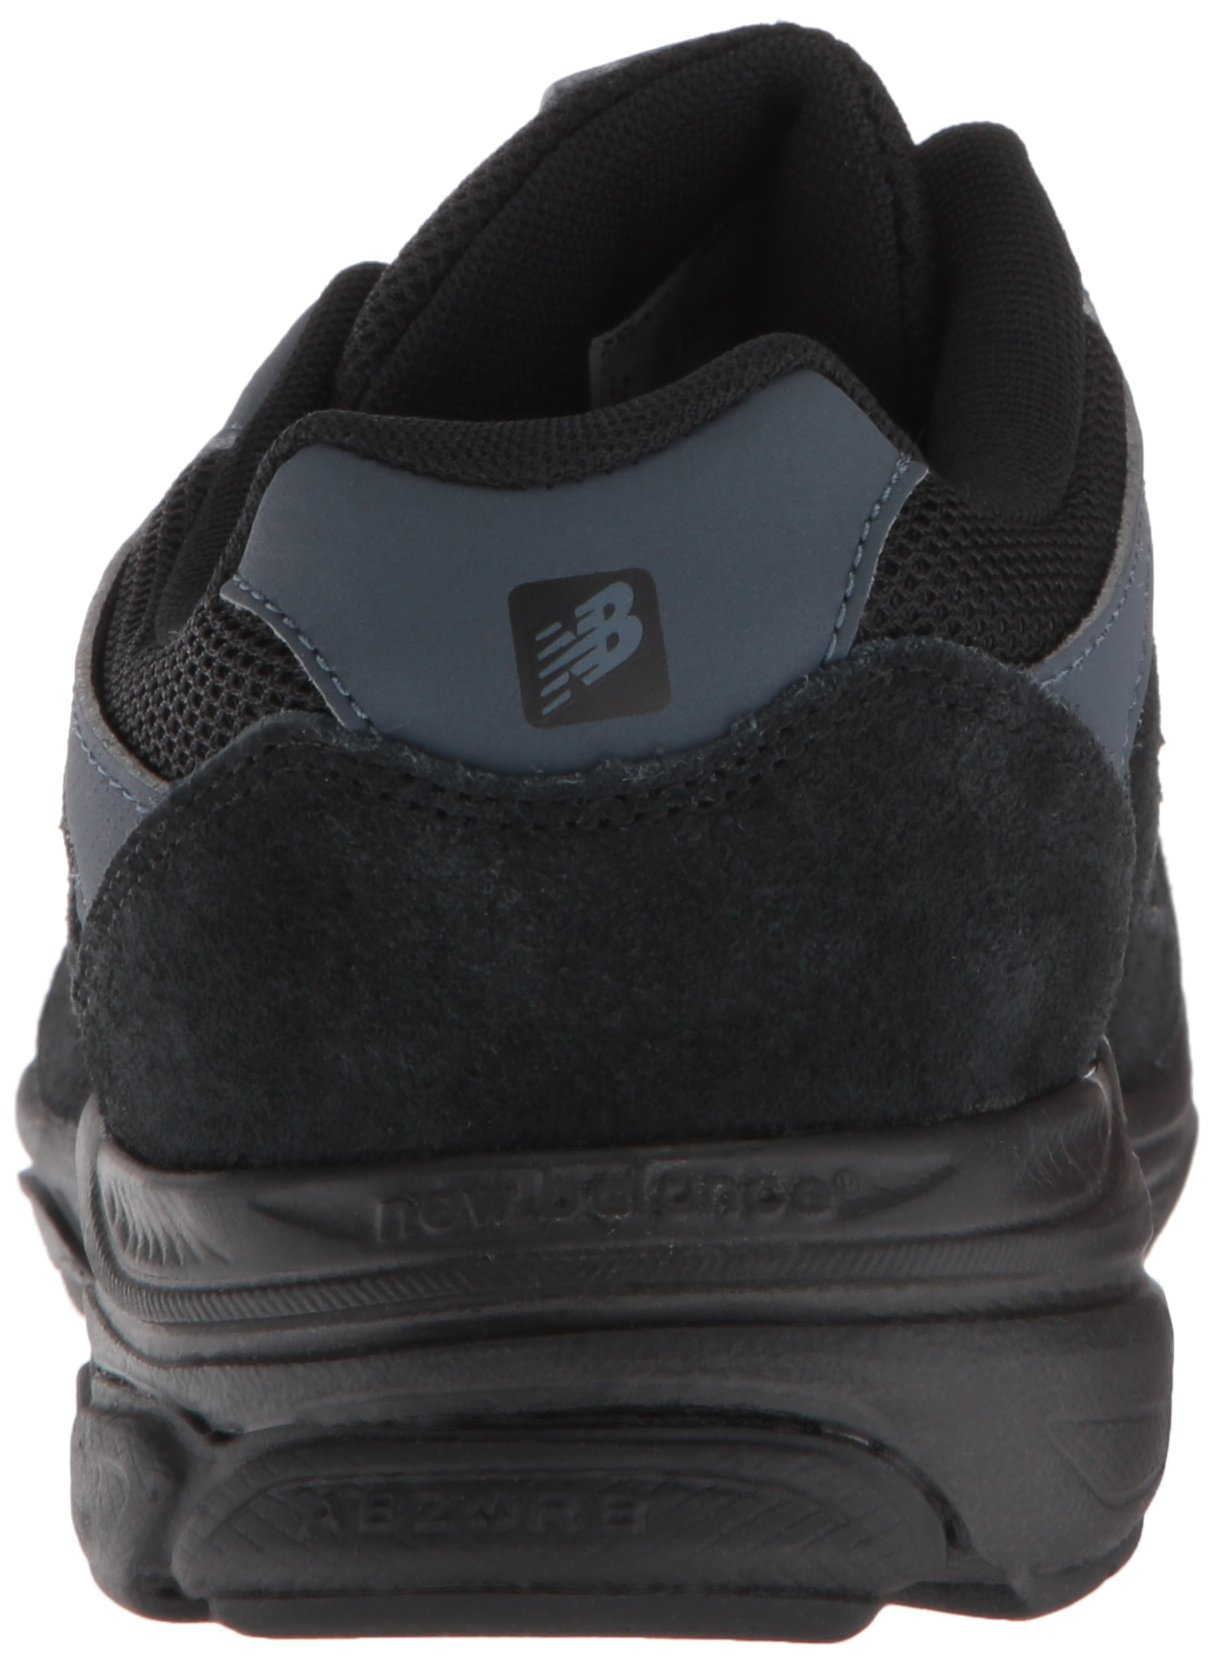 New Balance unisex child 888v1 Running Shoe